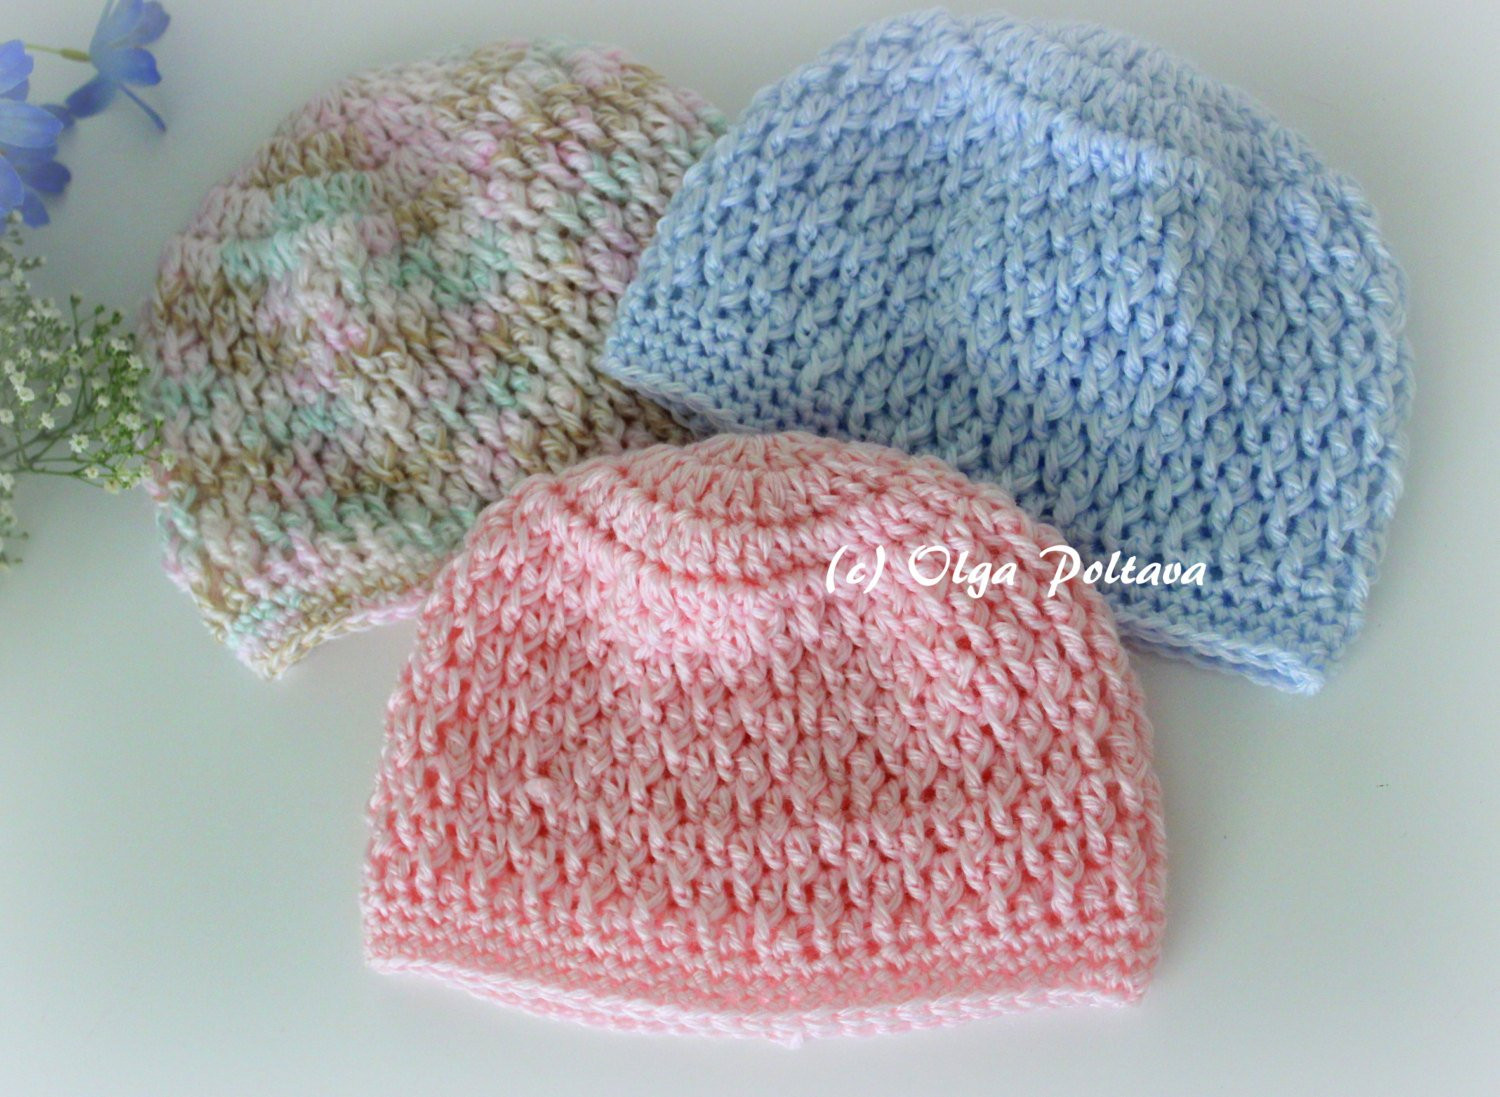 Elegant Newborn Baby Beanie Hat Crochet Pattern Size 0 3 Months Boys Crochet toddler Hat Pattern Of Delightful 40 Ideas Crochet toddler Hat Pattern